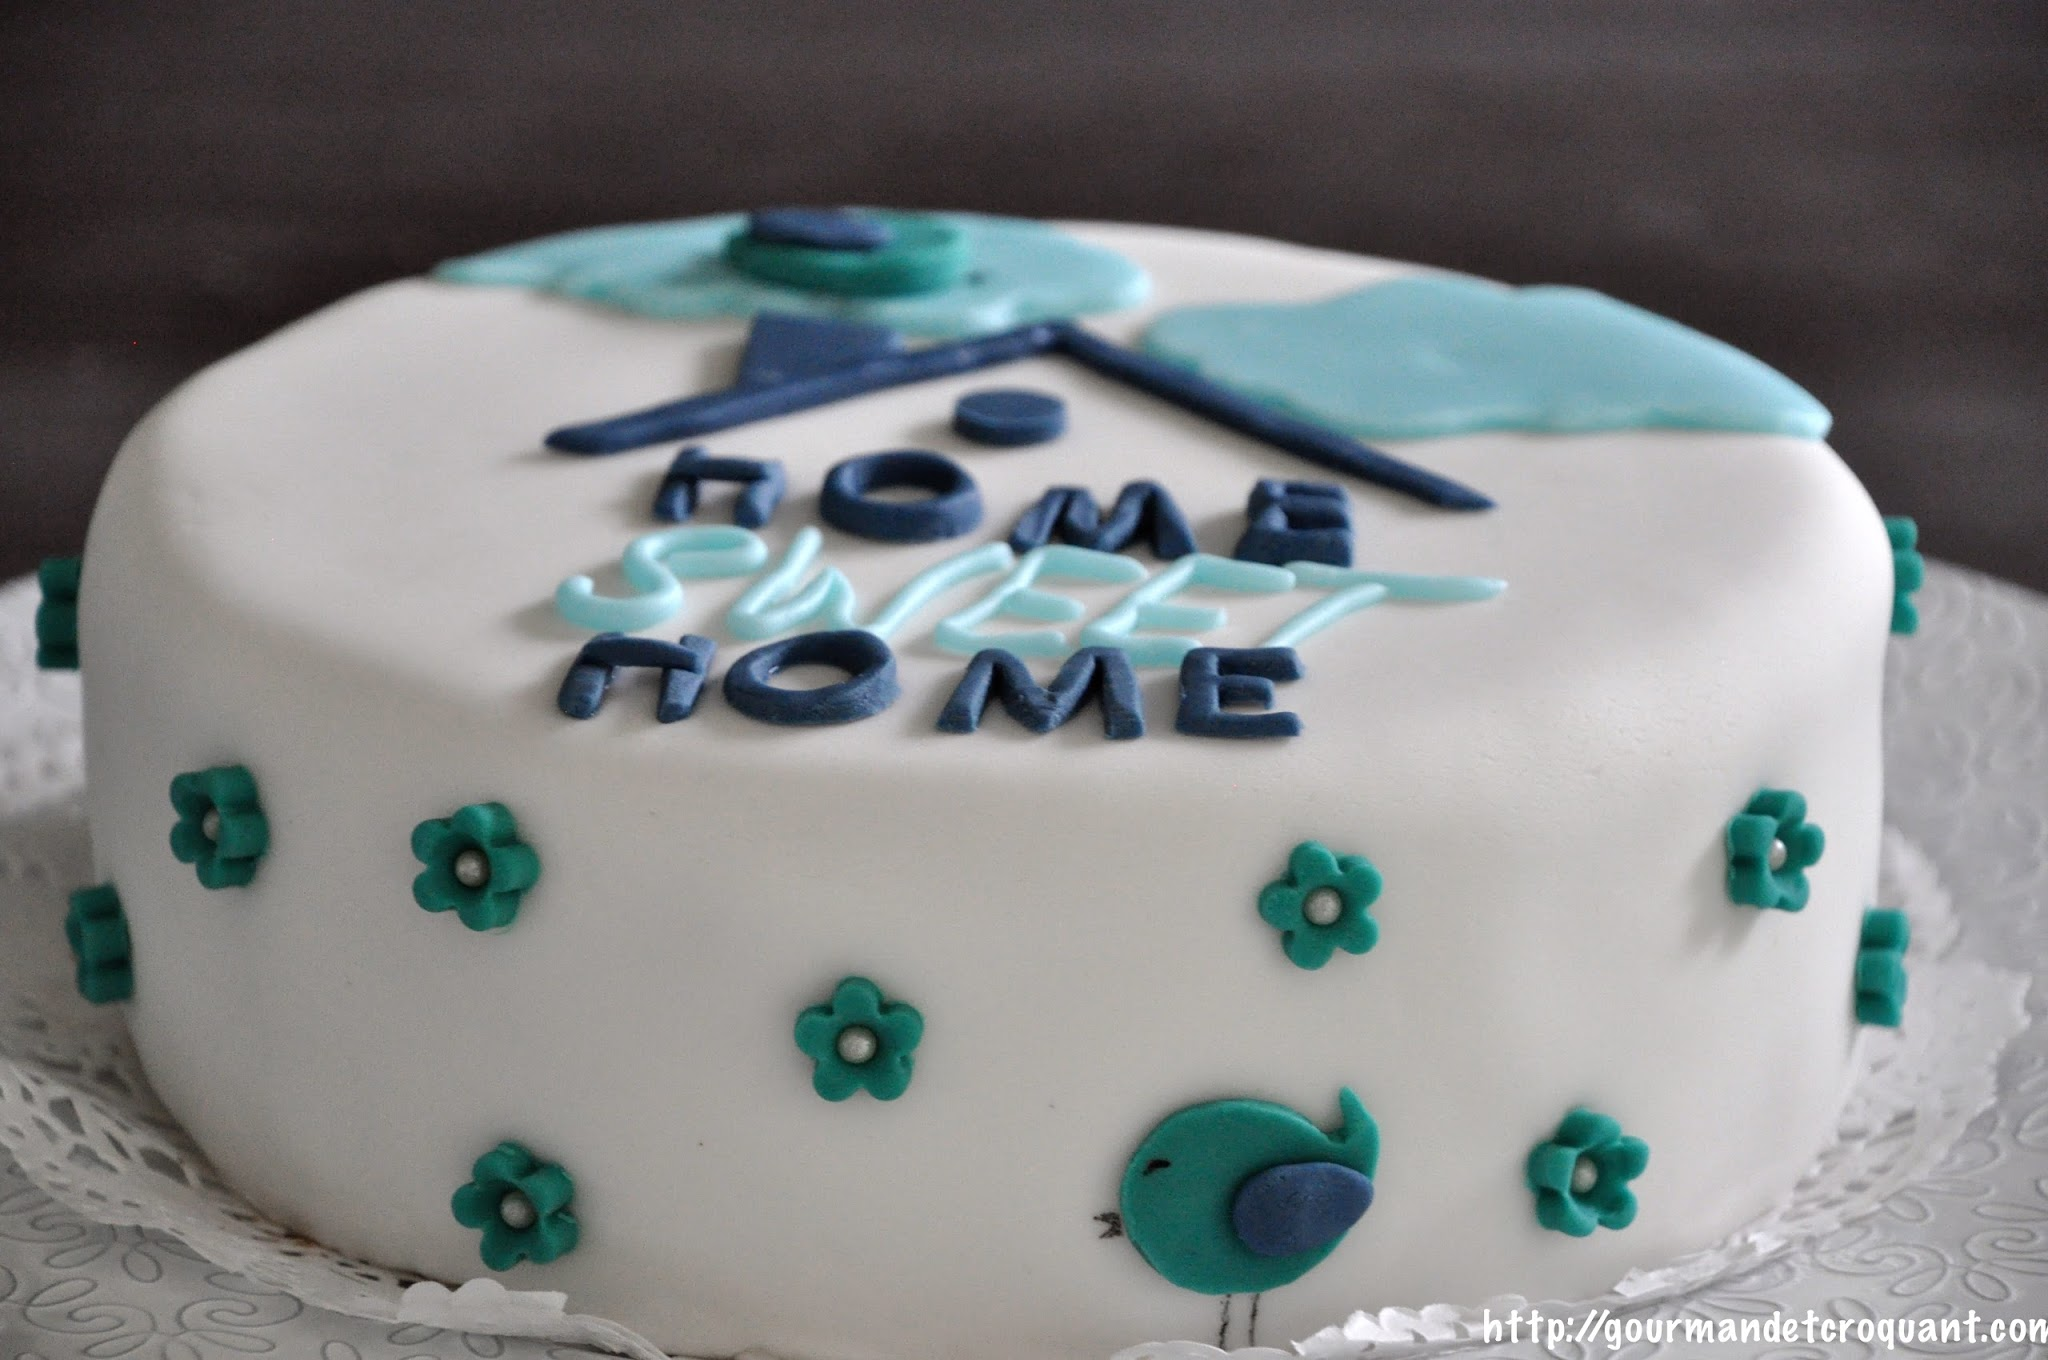 Cheminée Toit Dessin Gourmand Et Croquant: Cake Design Home Sweet Home